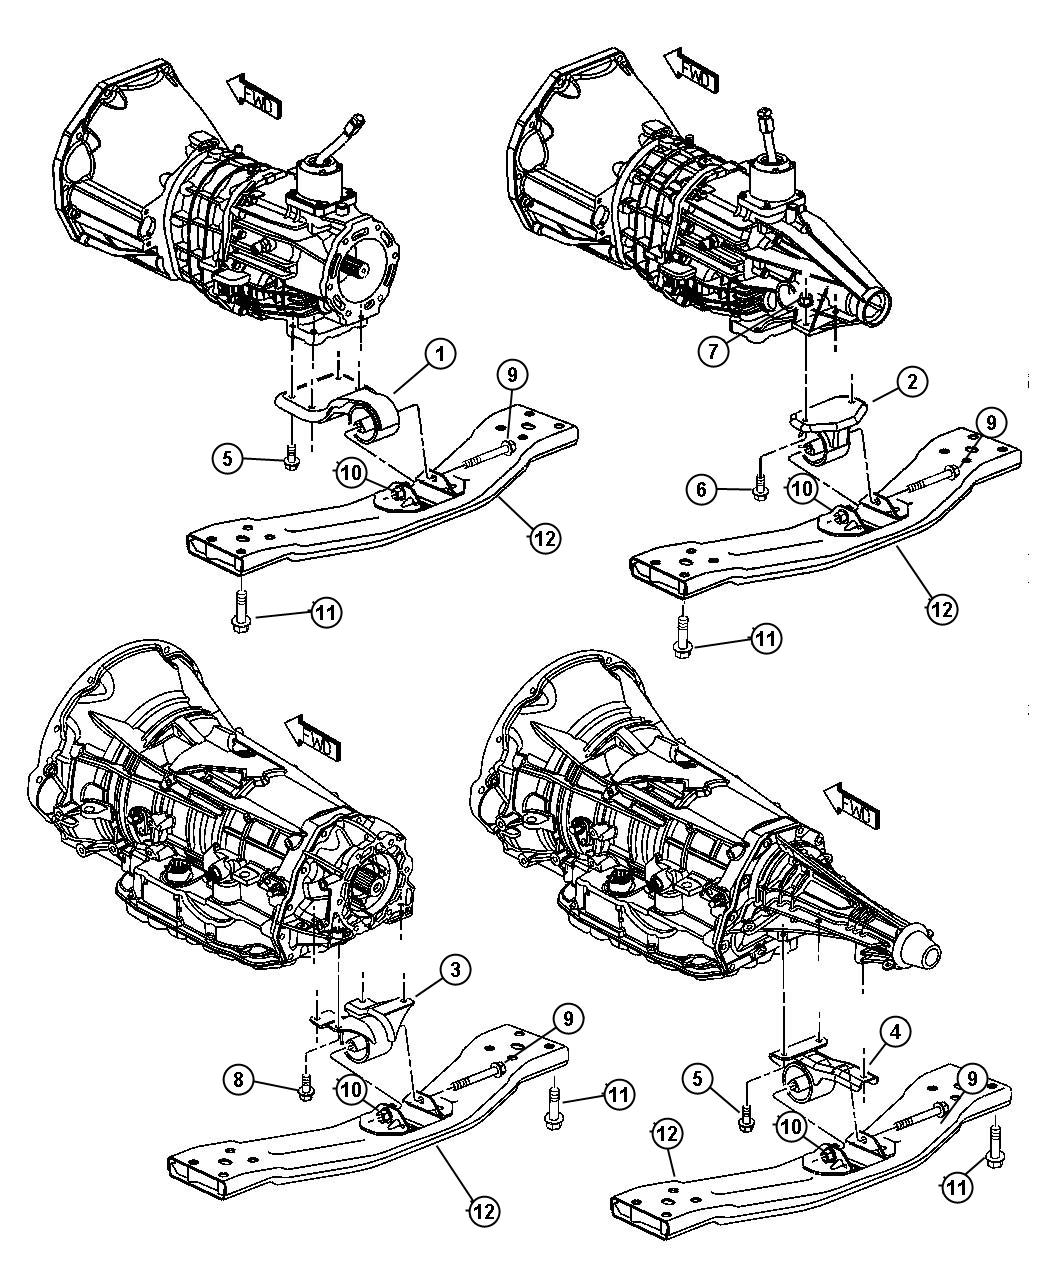 Jeep Liberty Used for: BRACKET AND INSULATOR. Transmission